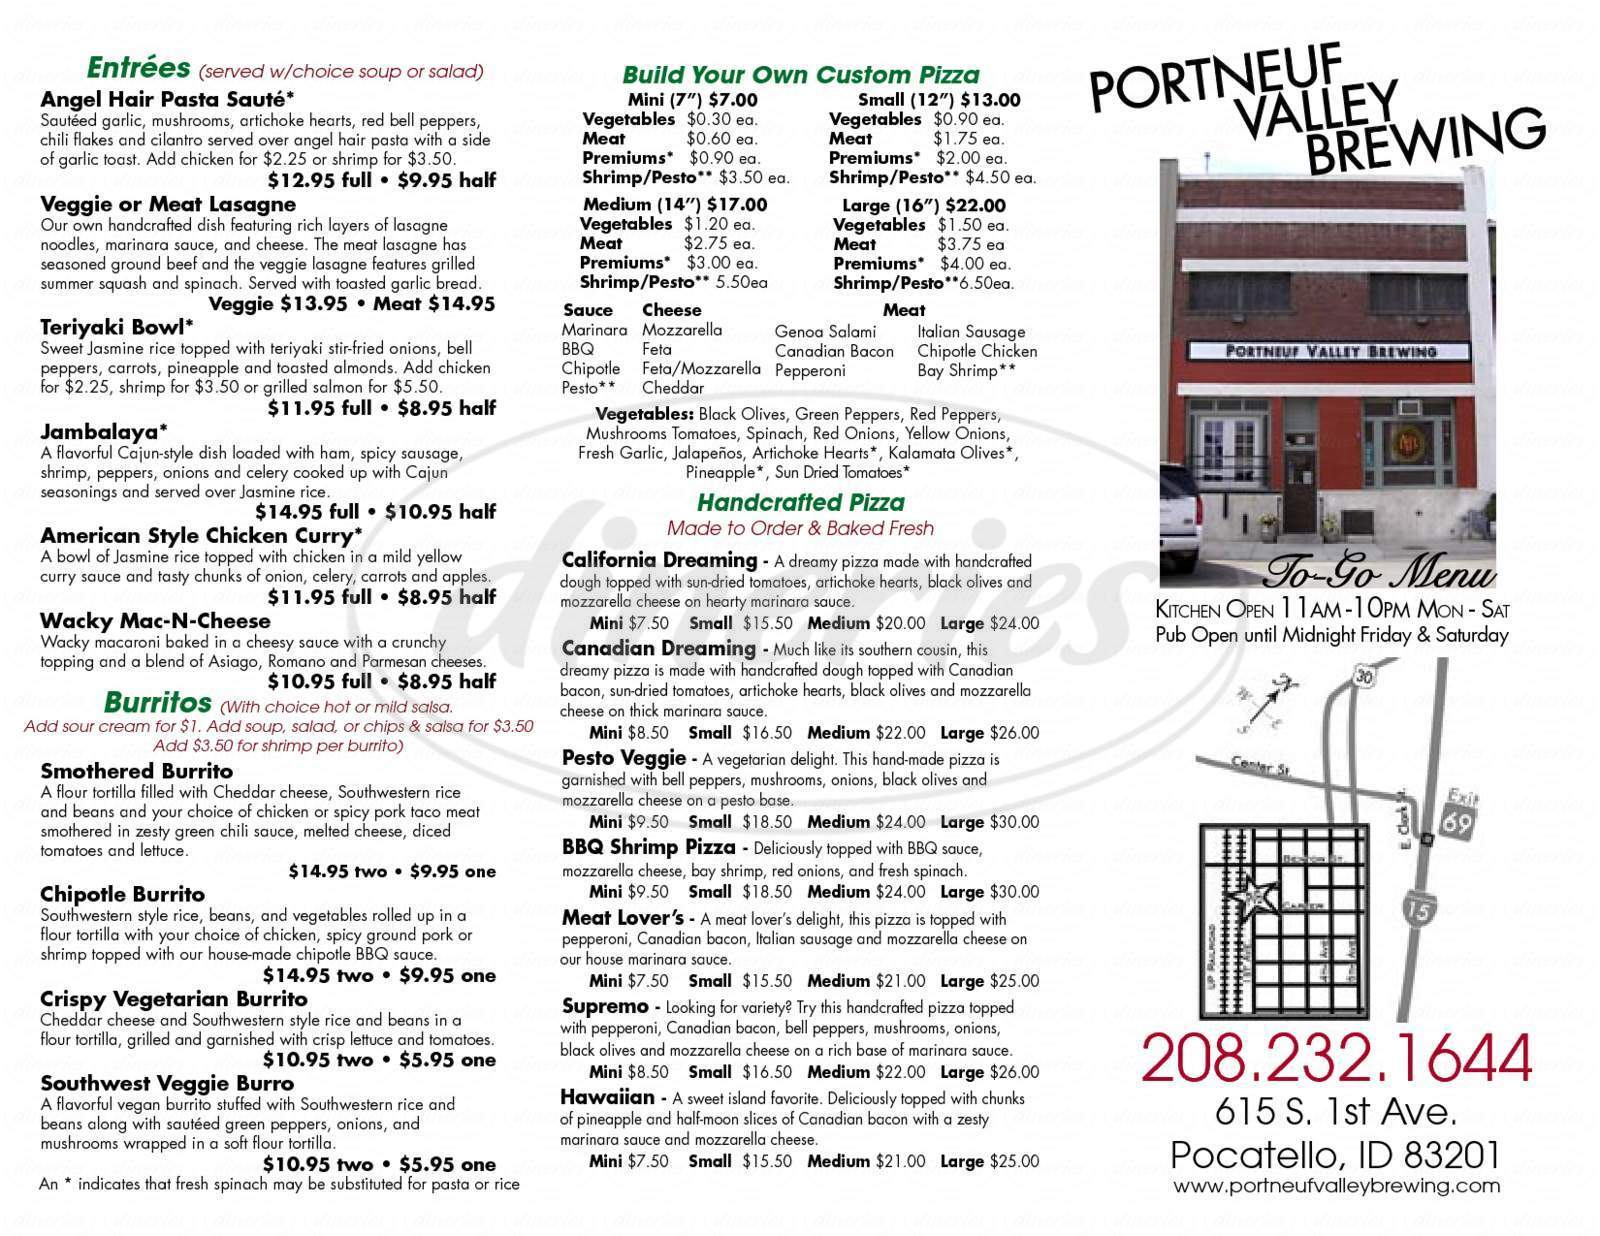 menu for Portneuf Valley Brewing